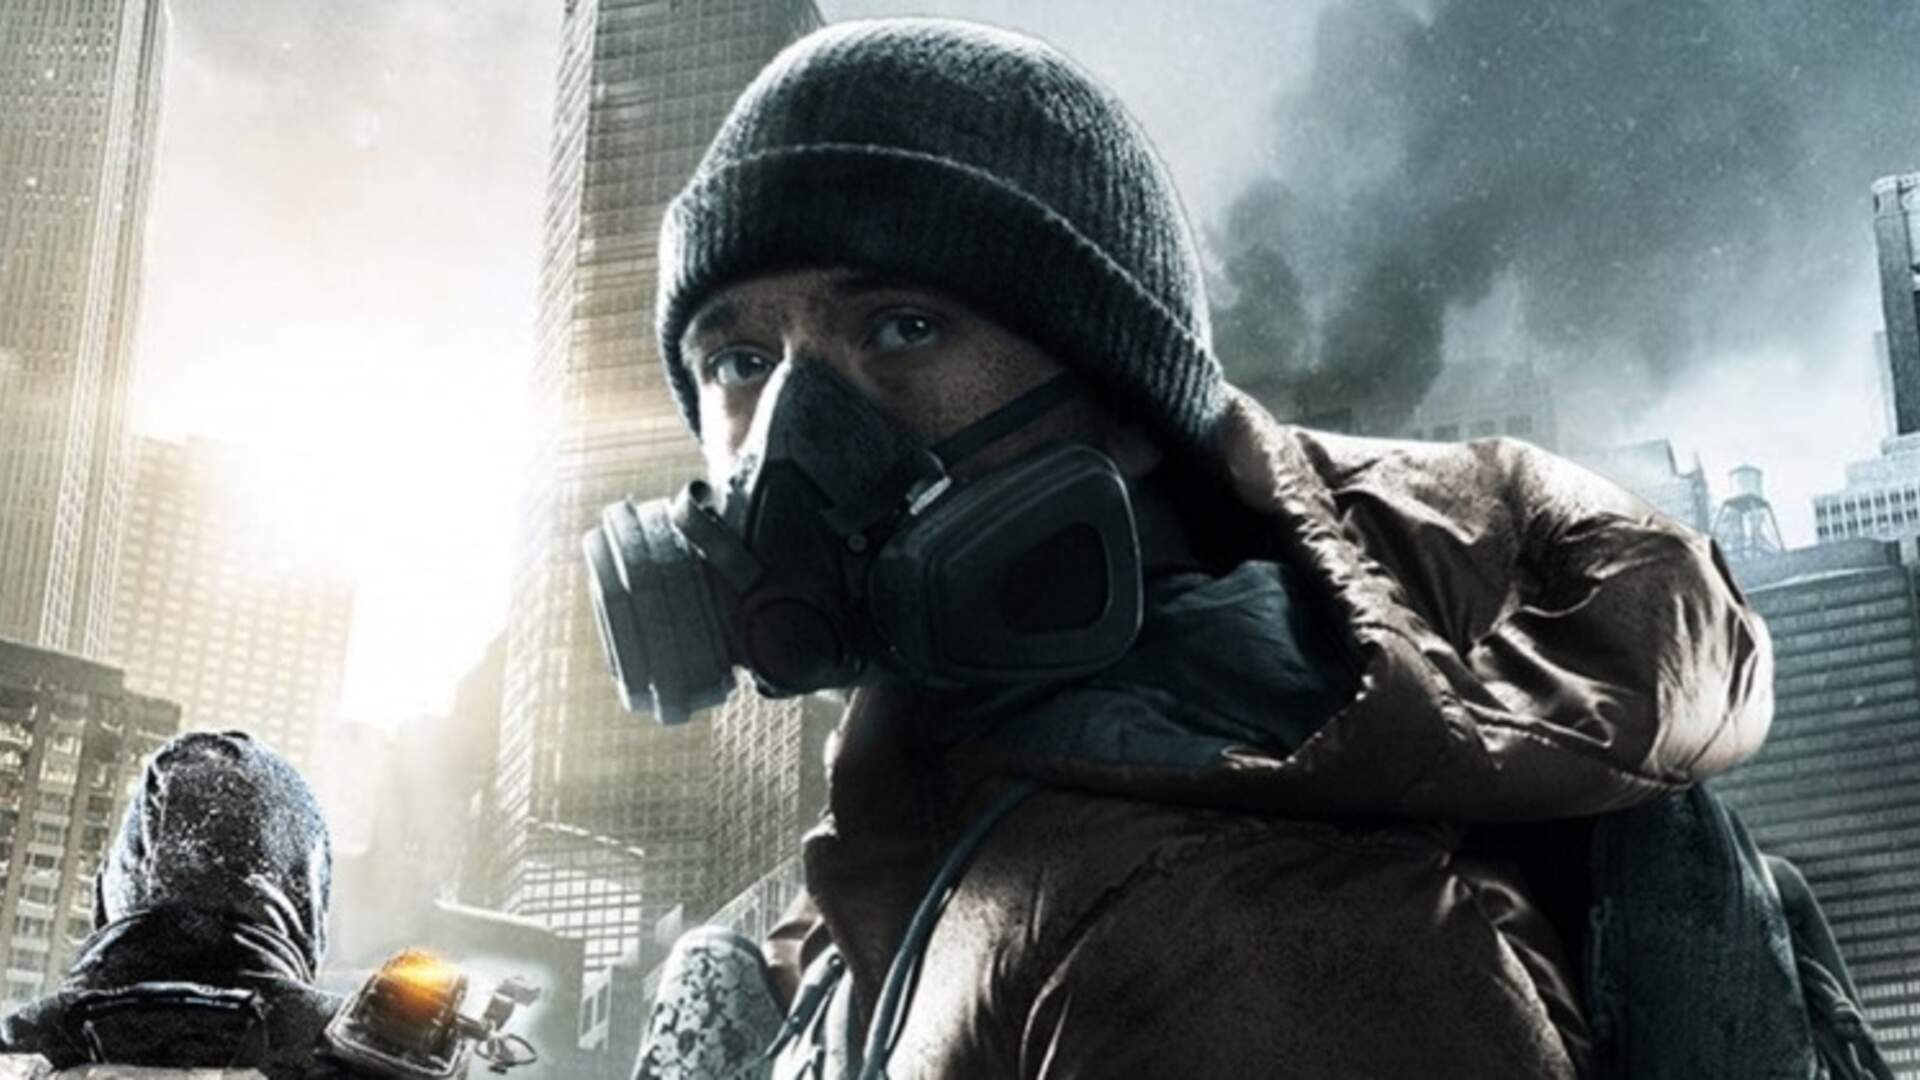 The Division Receives Xbox One X Enhancements With New Update